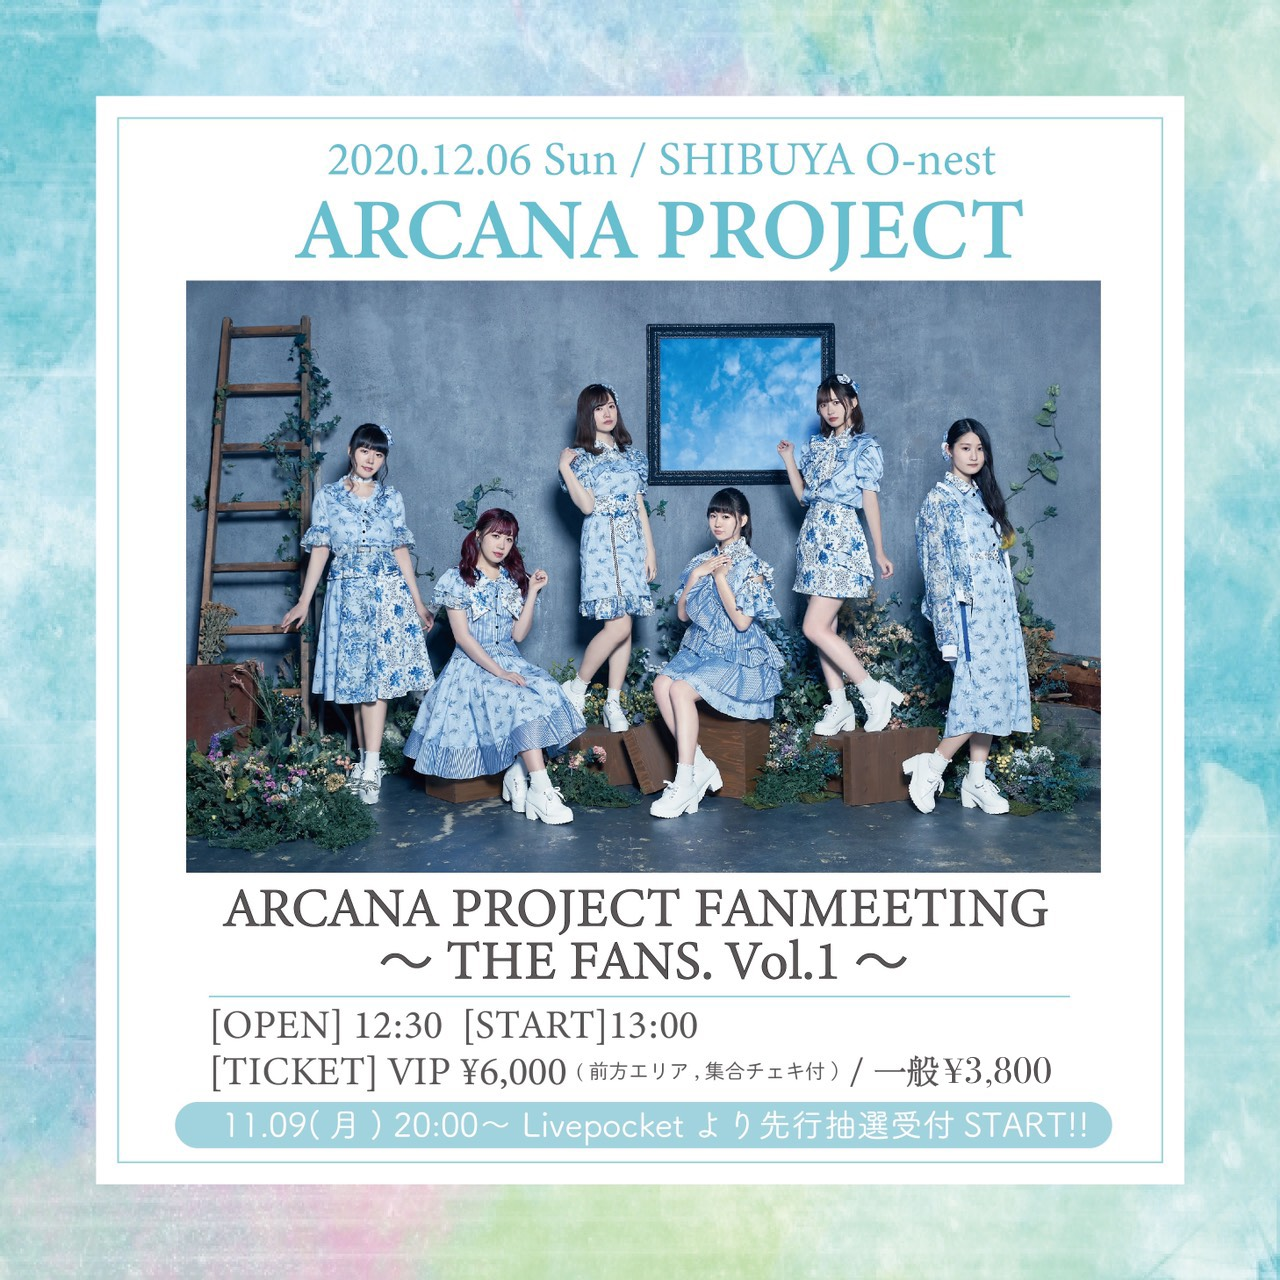 ARCANA PROJECT FANMEETING 〜THE FANS. Vol.1〜